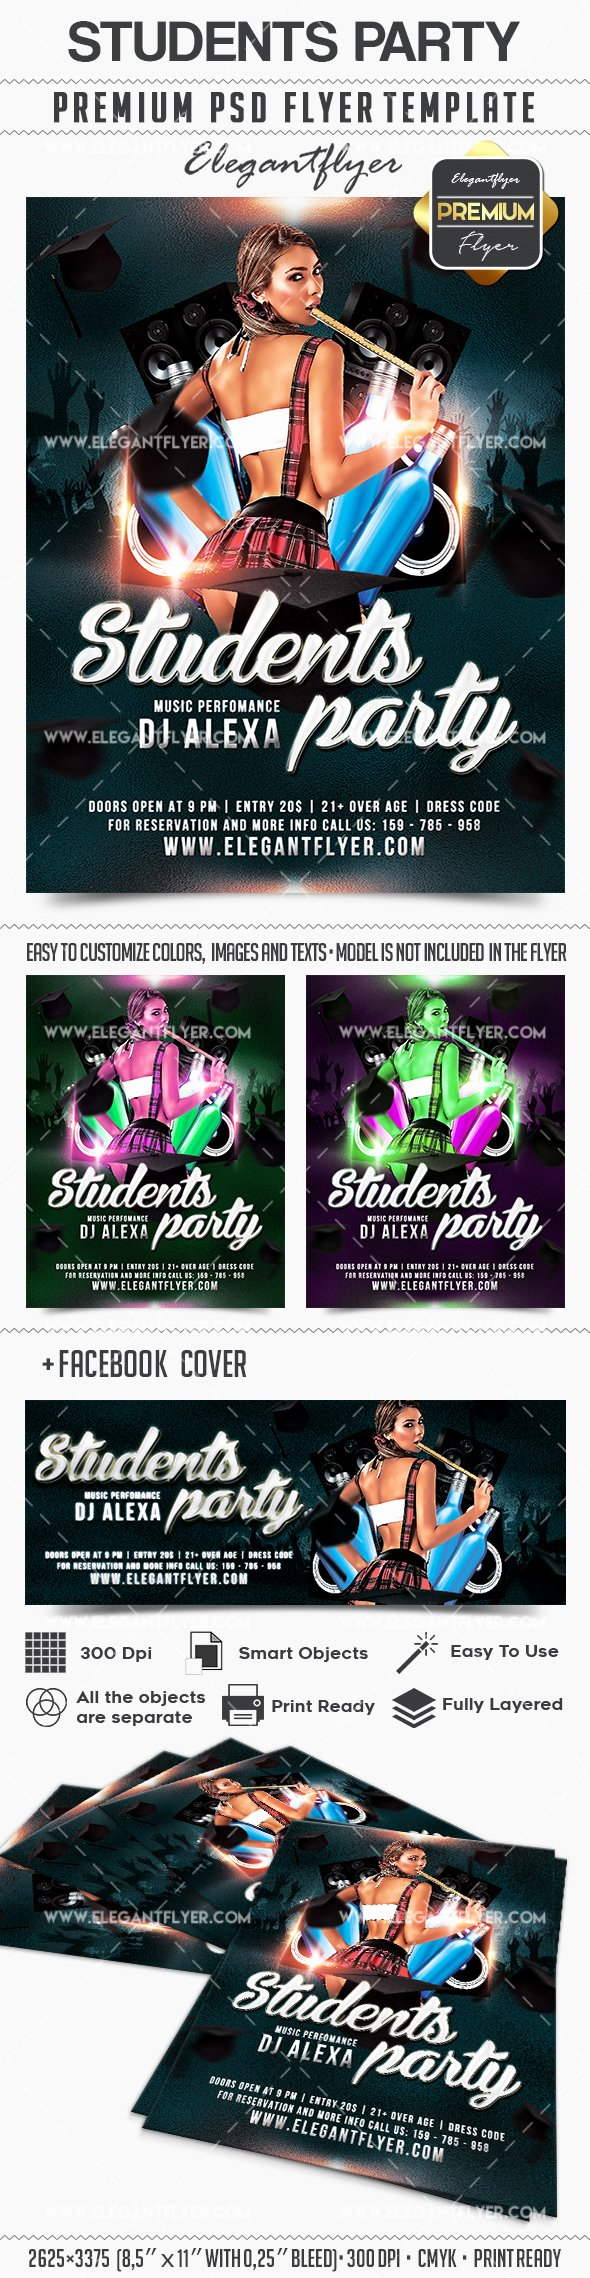 Facebook Template for Students Lovely Students Party – Flyer Psd Template – by Elegantflyer